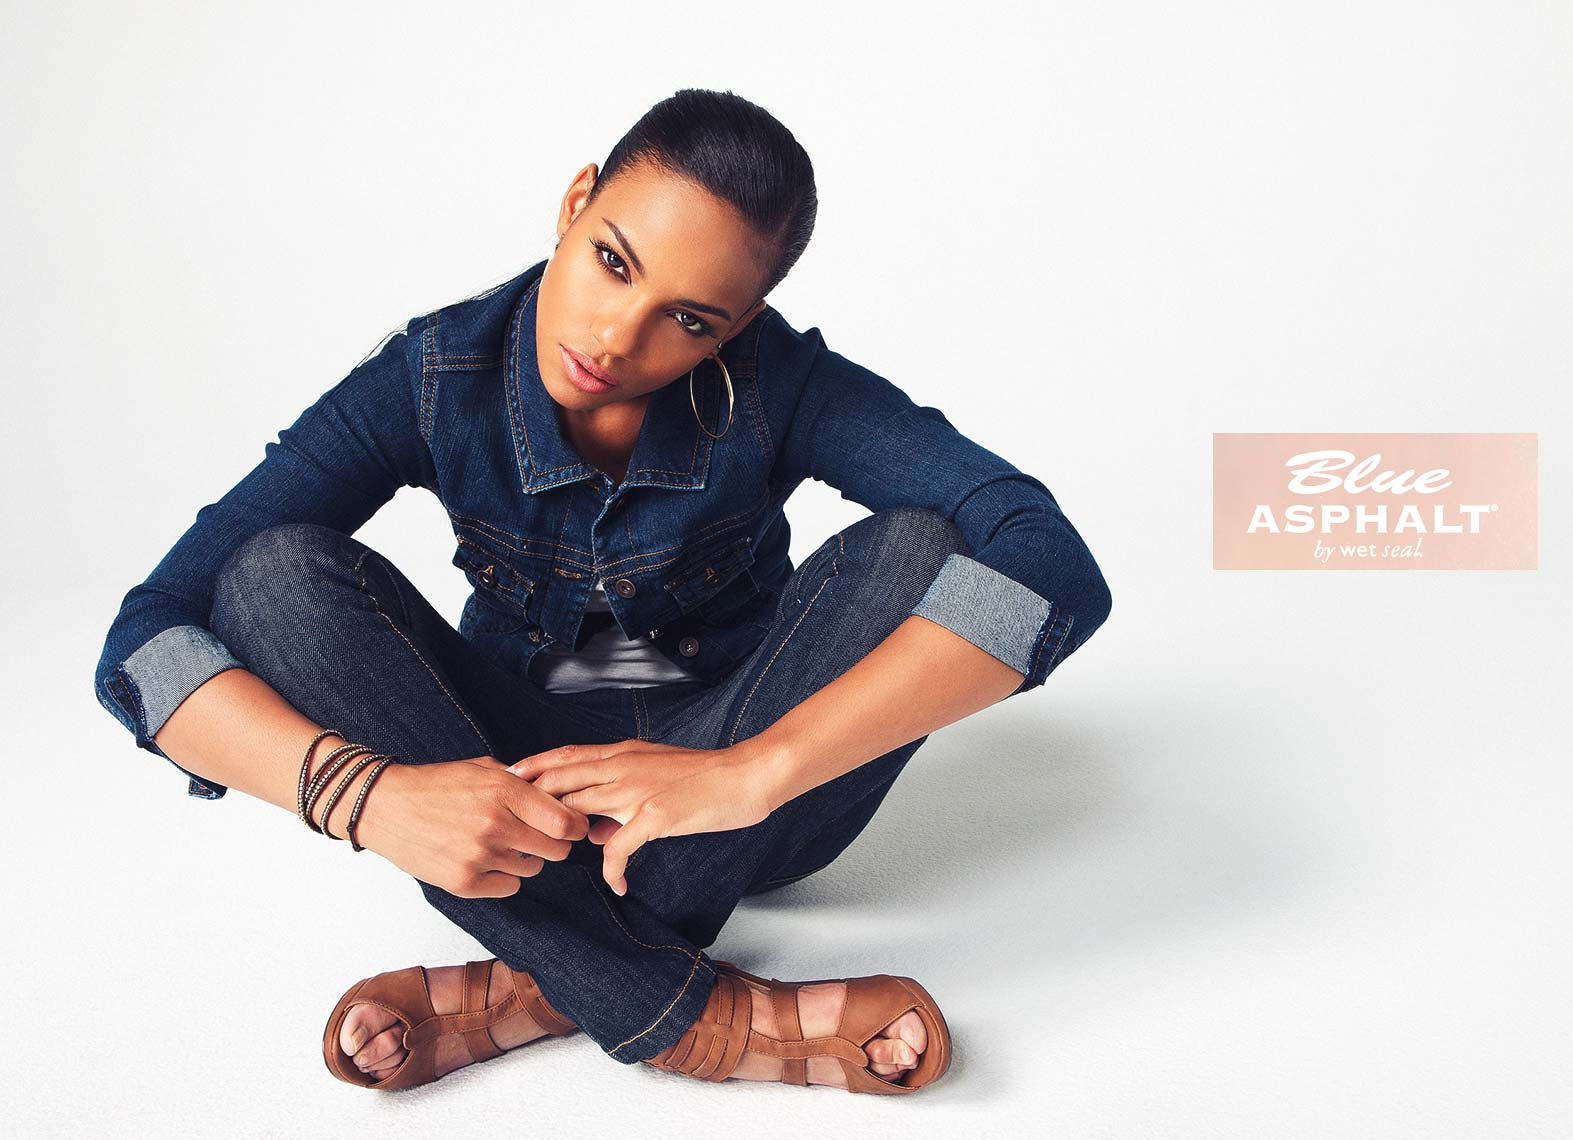 CHRIS-HUNT-FASHION-PHOTOGRAPHY-ADVERTISING-DENIM-WETSEAL-0481